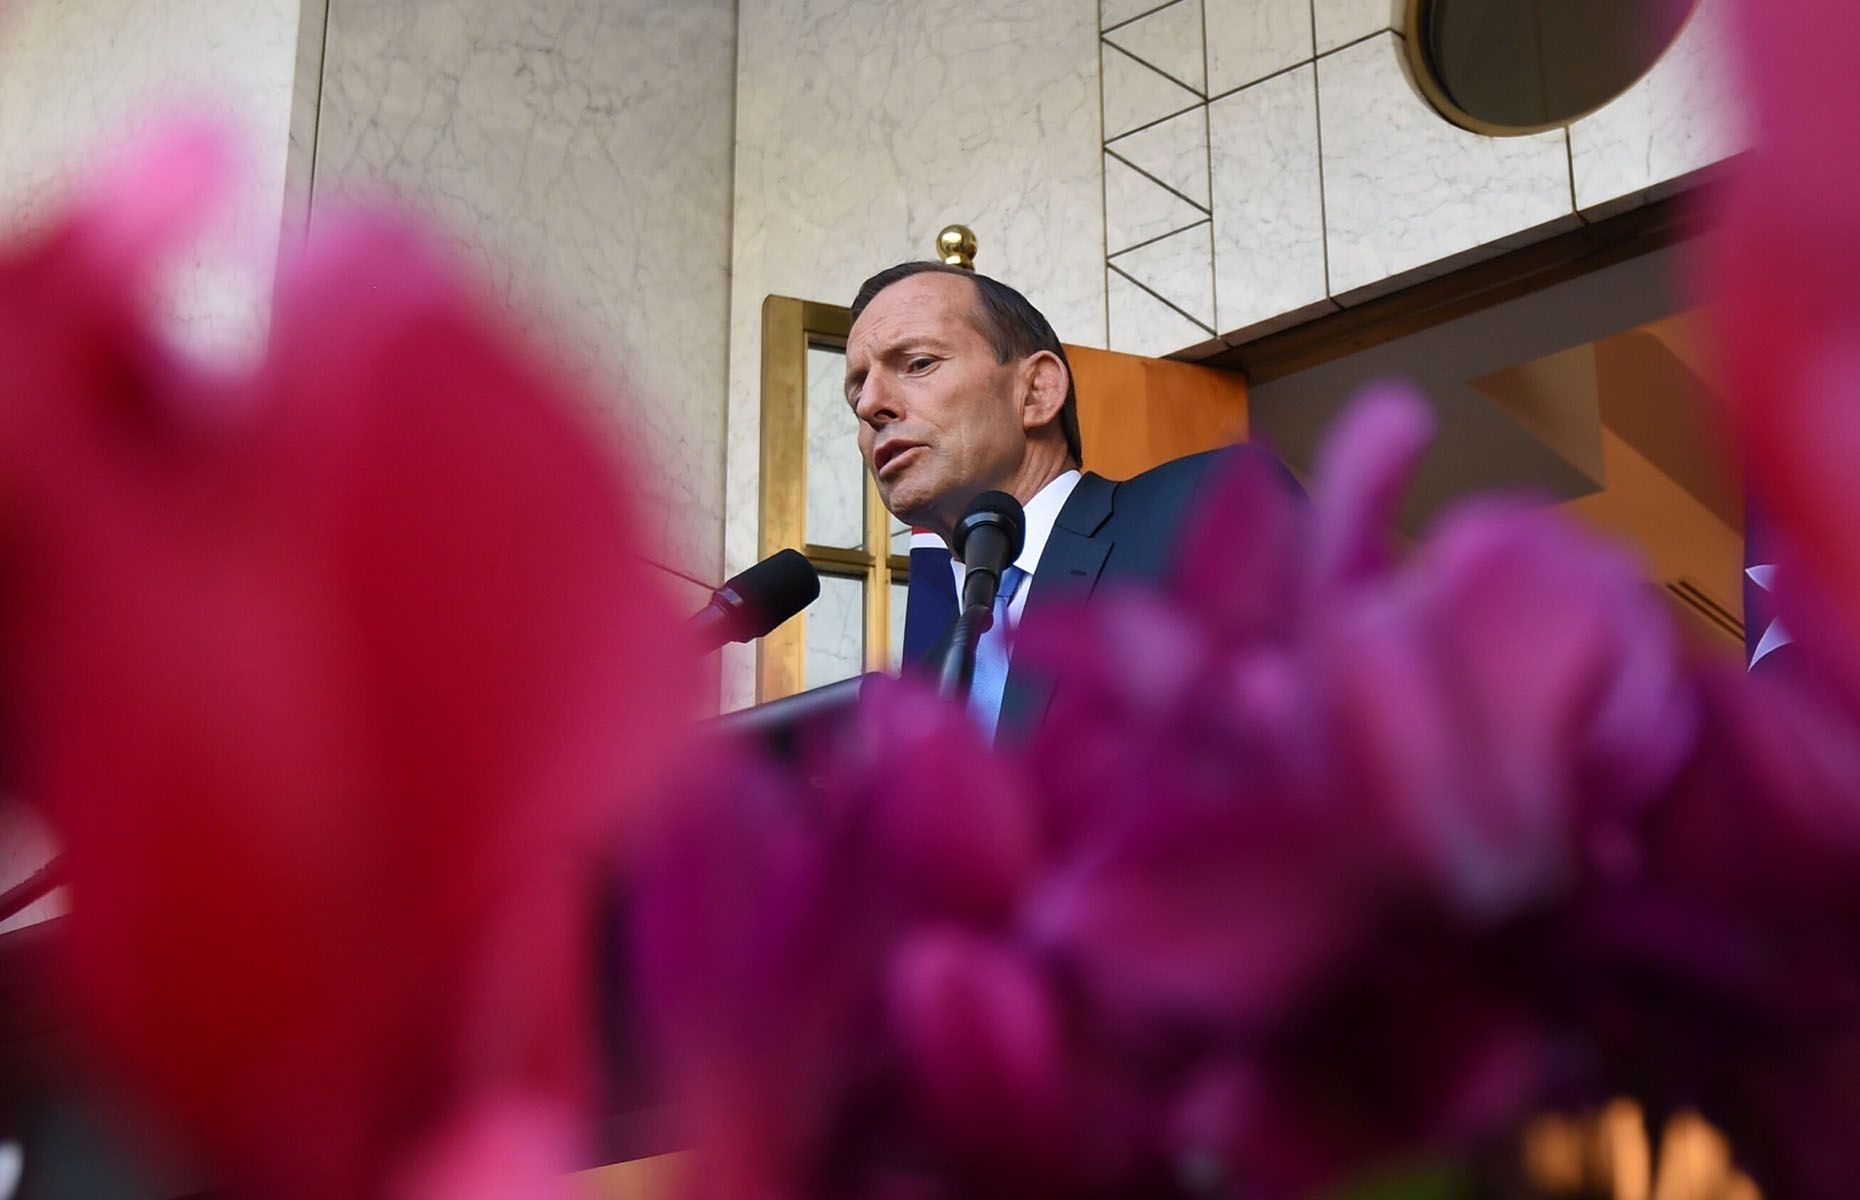 """The attitude of Prime Minister Tony Abbott to the global challenges of climate change is """"eccentric"""", """"baffling"""" and """"flat earther"""", according to a group of senior British Conservatives."""